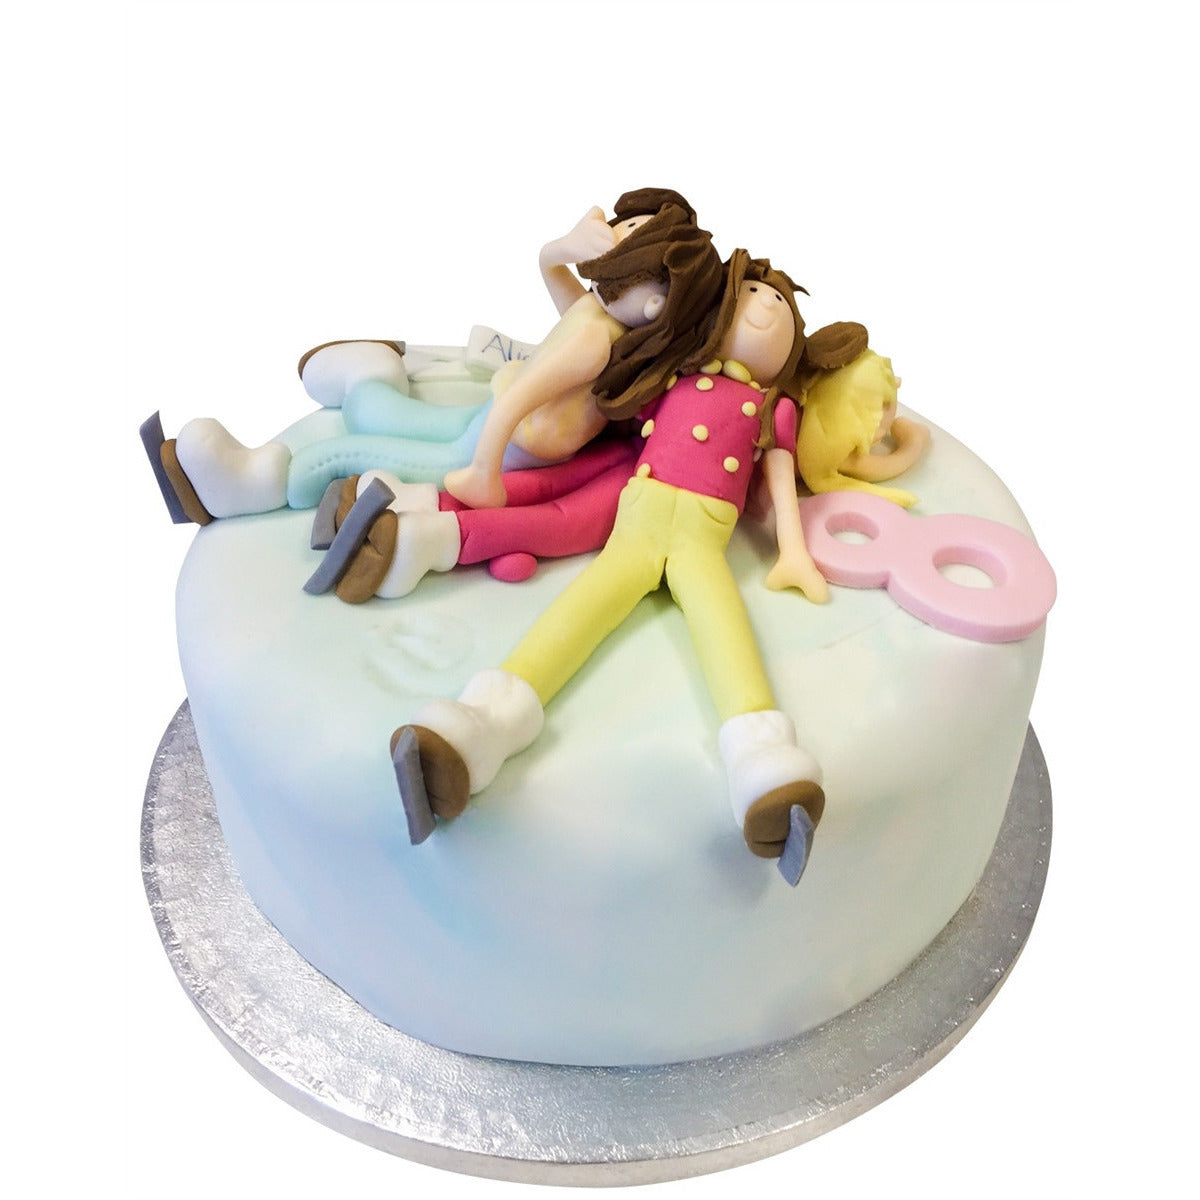 Outstanding Ice Skating Cake Buy Online Free Uk Delivery New Cakes Personalised Birthday Cards Petedlily Jamesorg